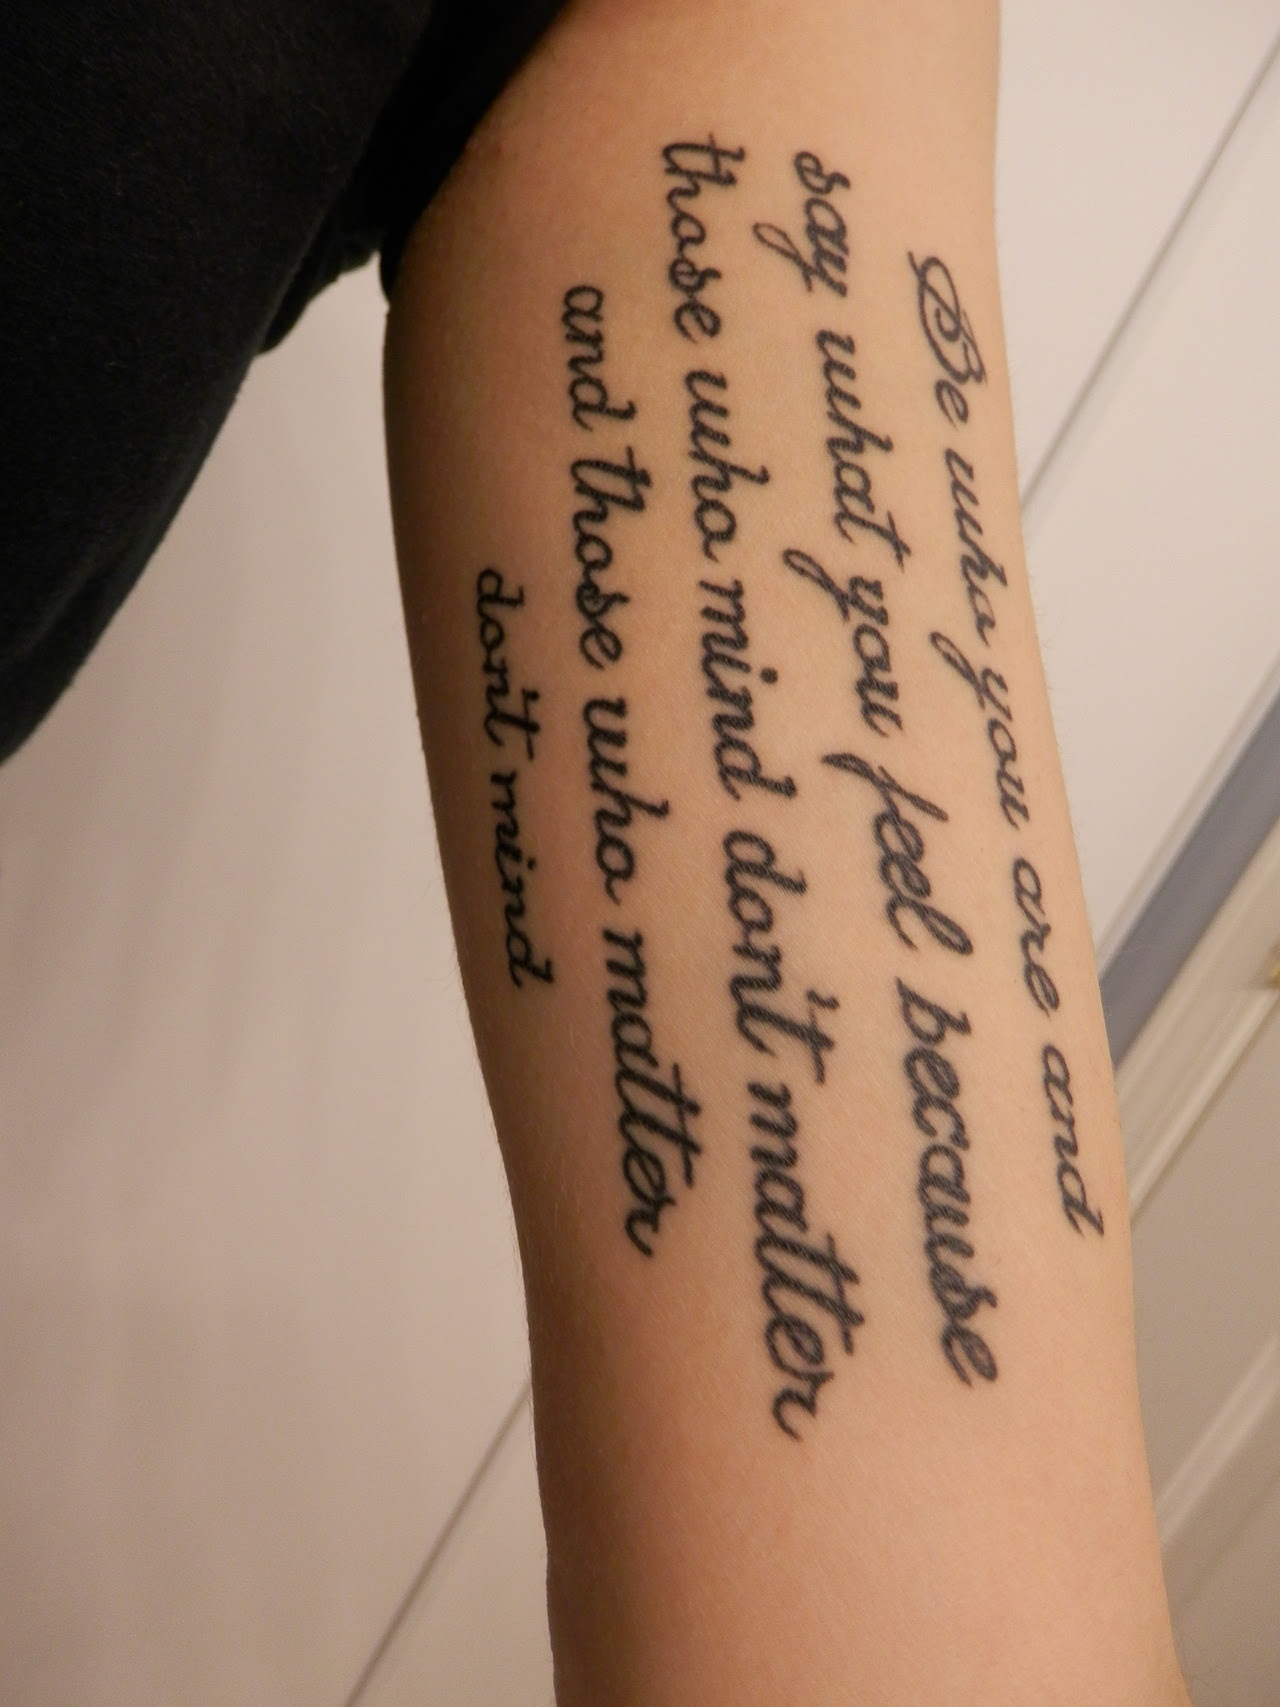 Quote Tattoos Designs, Ideas and Meaning | Tattoos For You